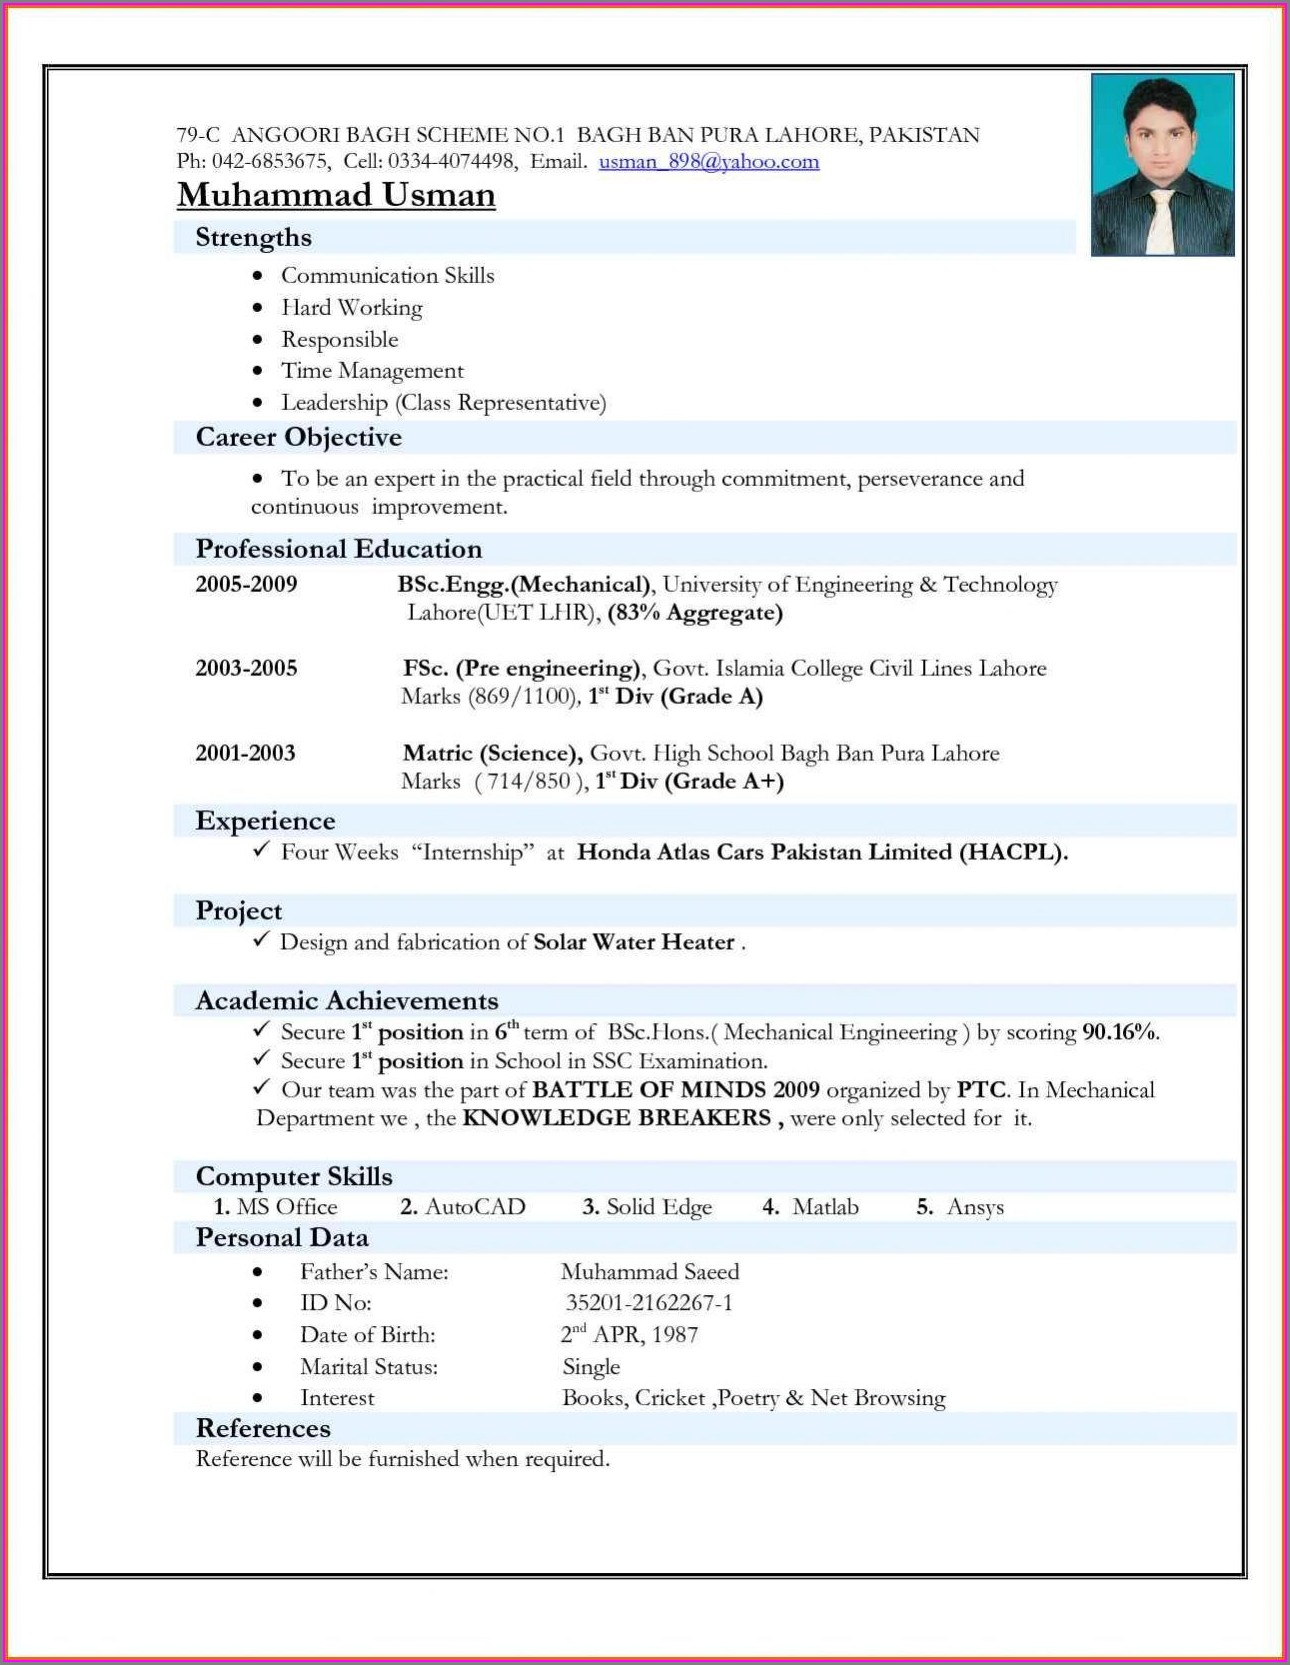 Resume Format For Freshers Free Download